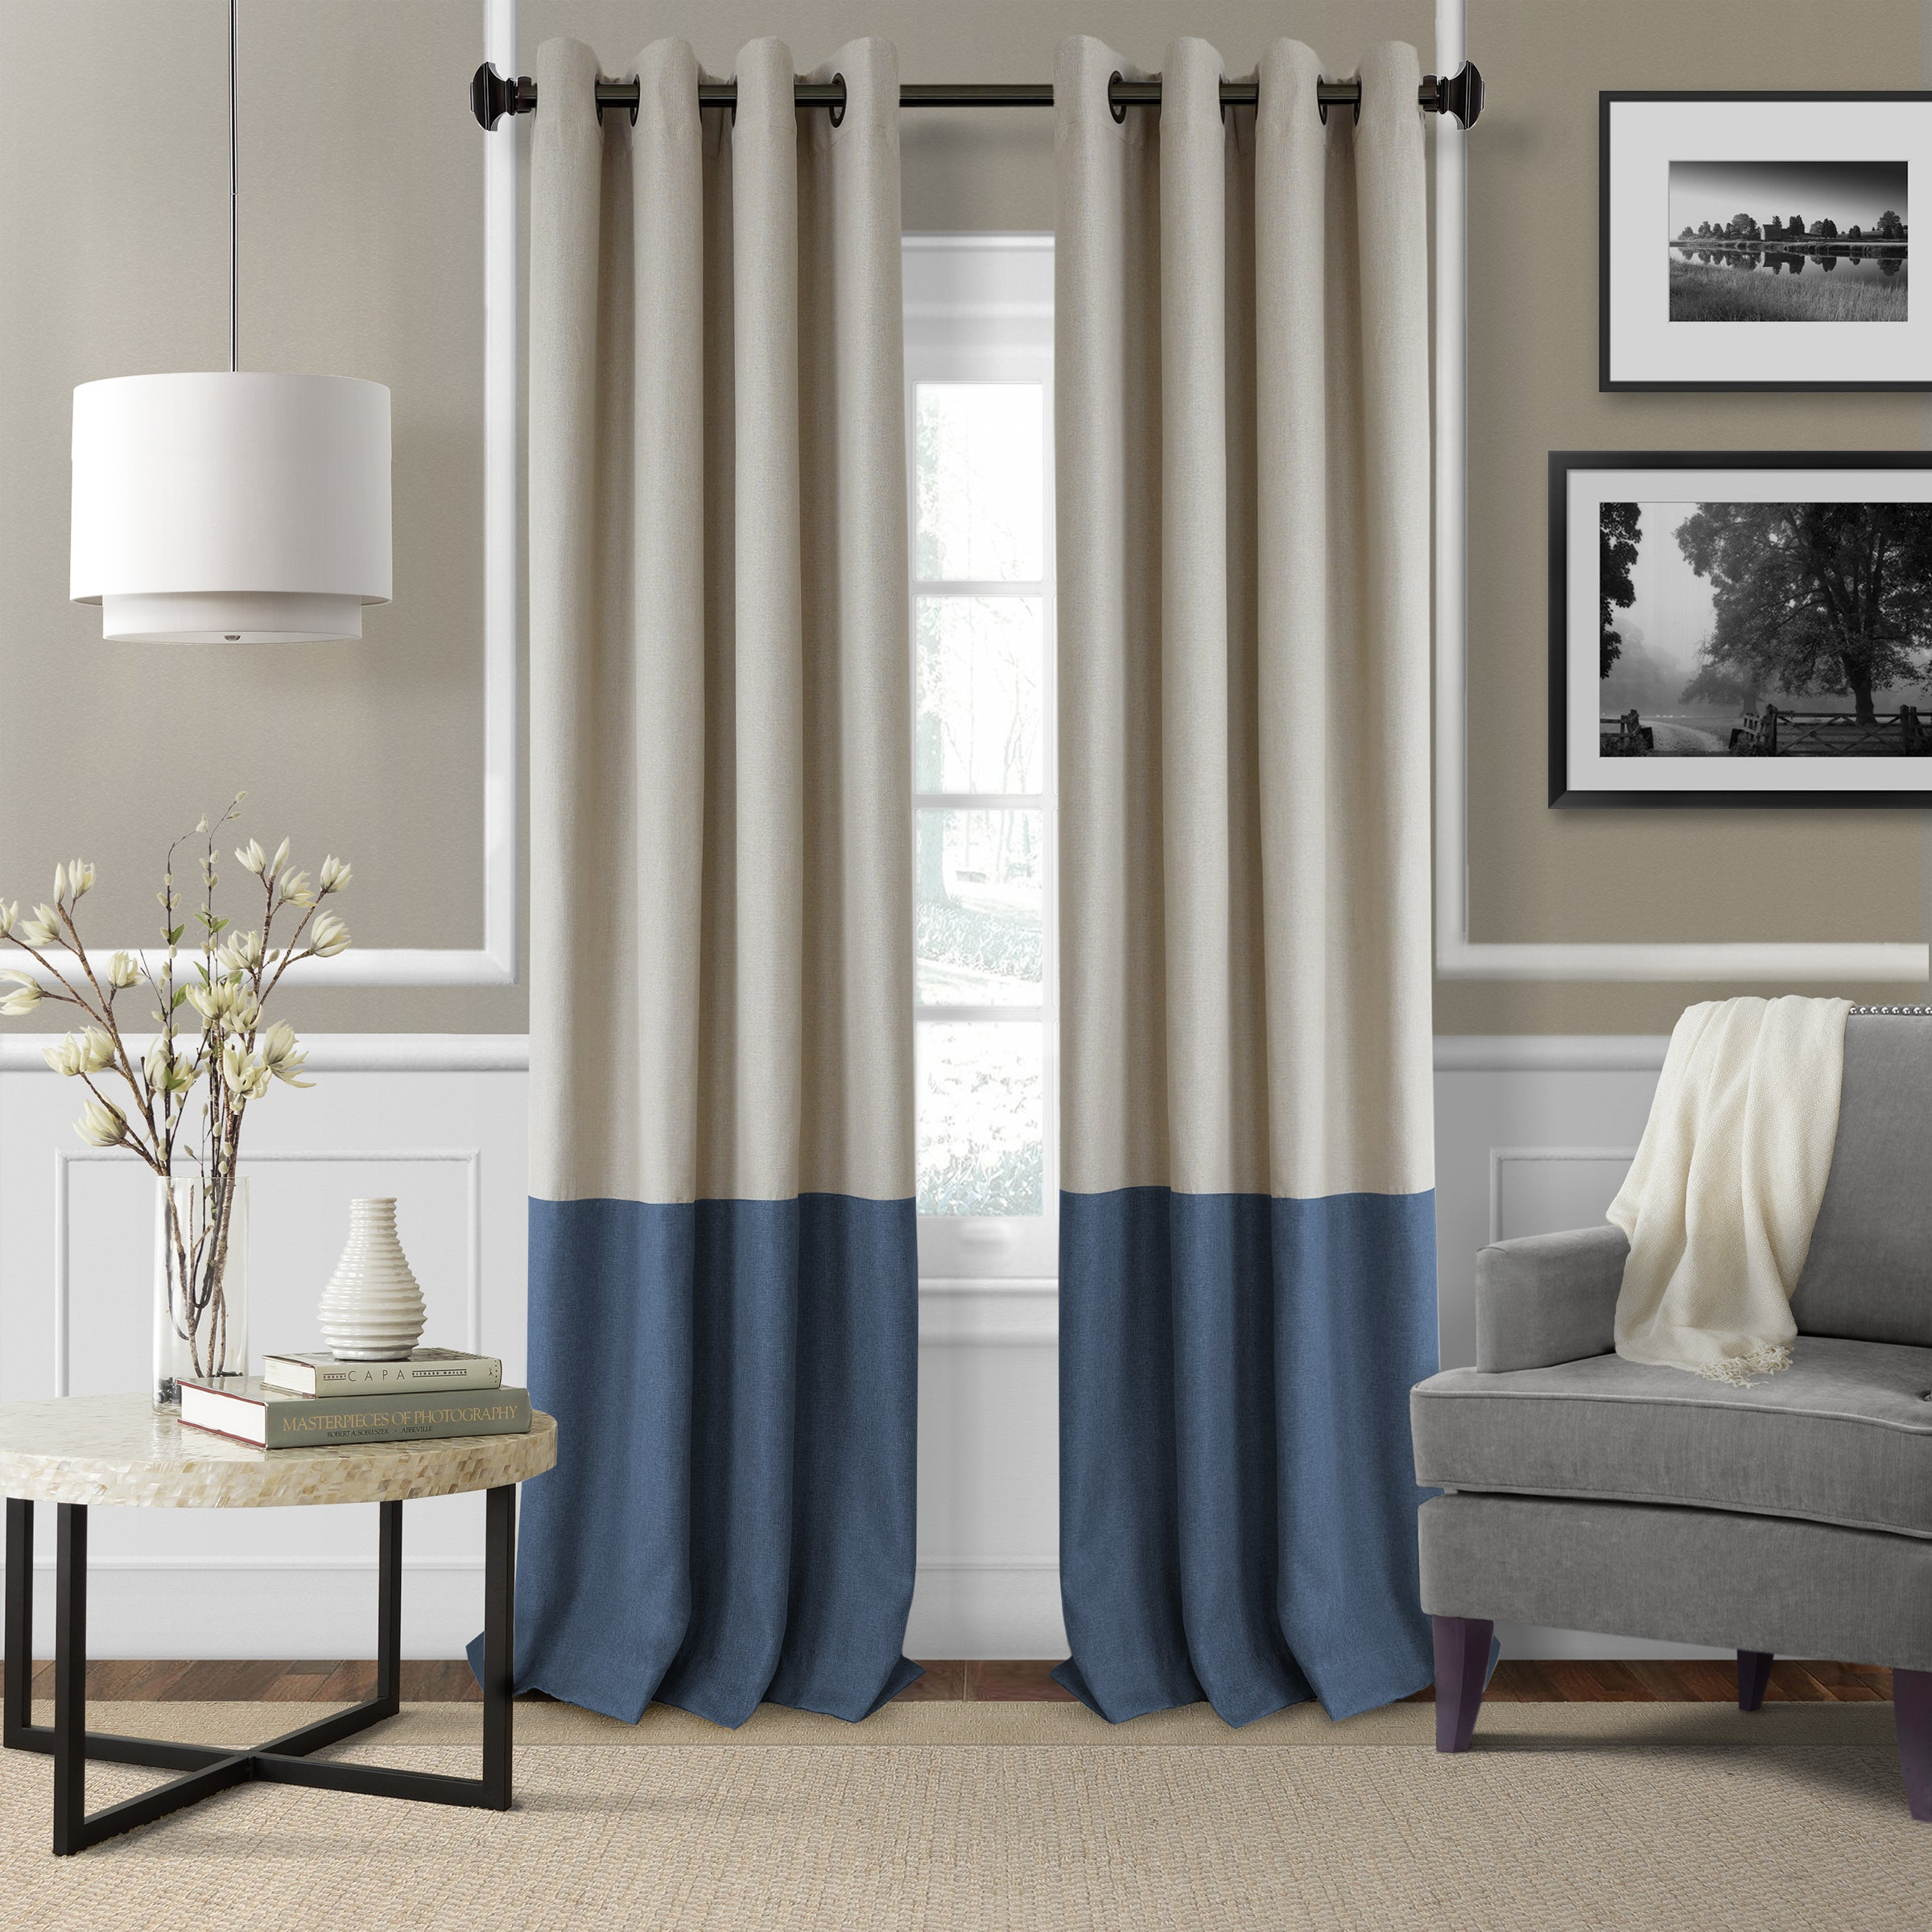 Elrene Braiden Blackout Curtain Panel - Free Shipping On Orders Over $45 -  Overstock.com - 22741827